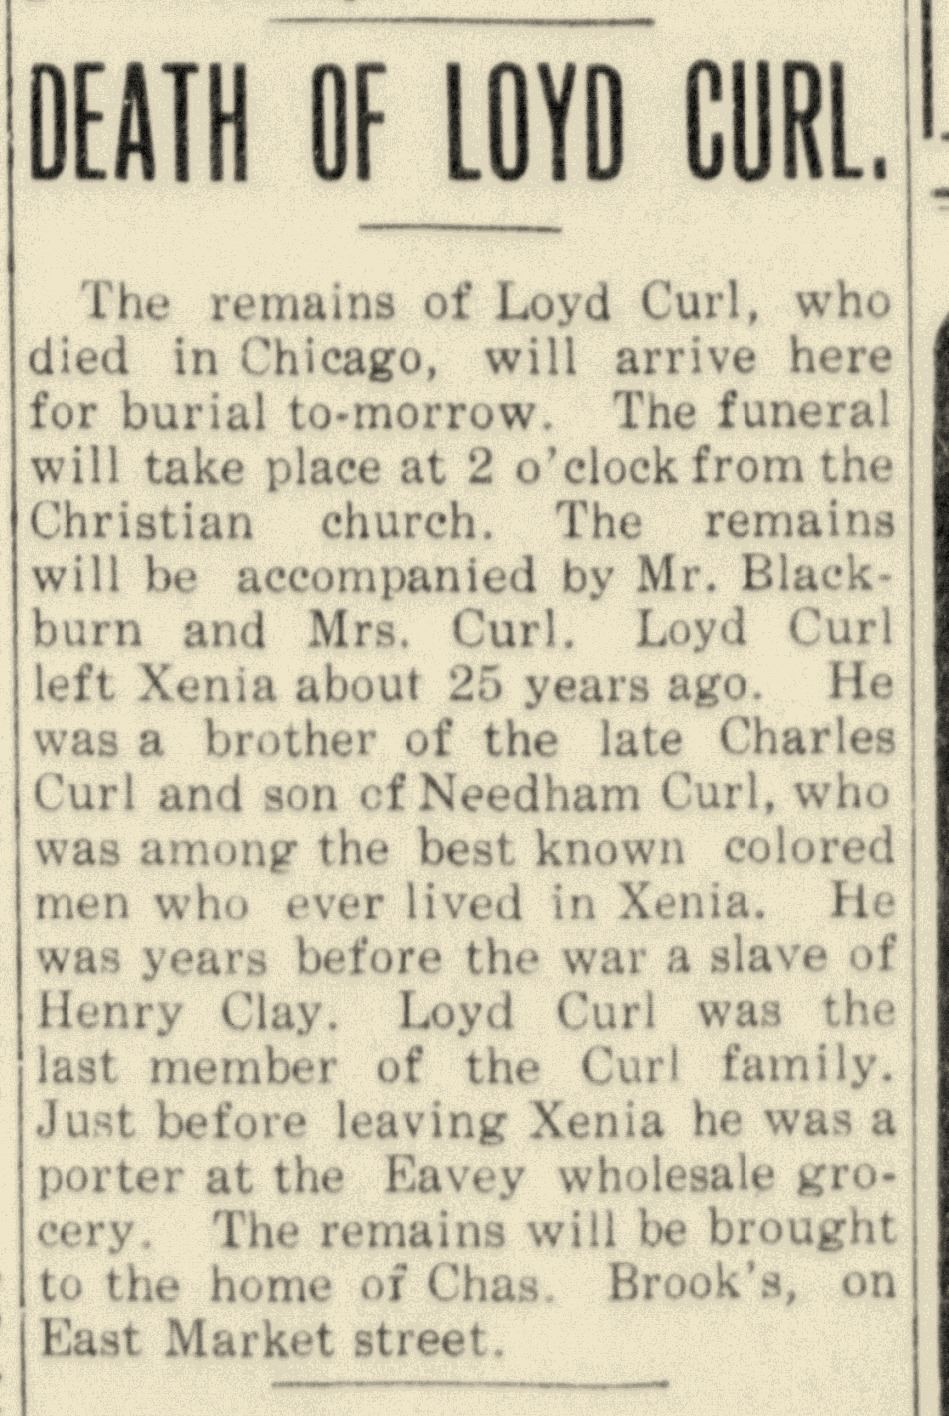 Fig 1. Notice of Death of Loyd H. Curl in Xenia Daily Gazette, dated September 4, 1911 (JPG)